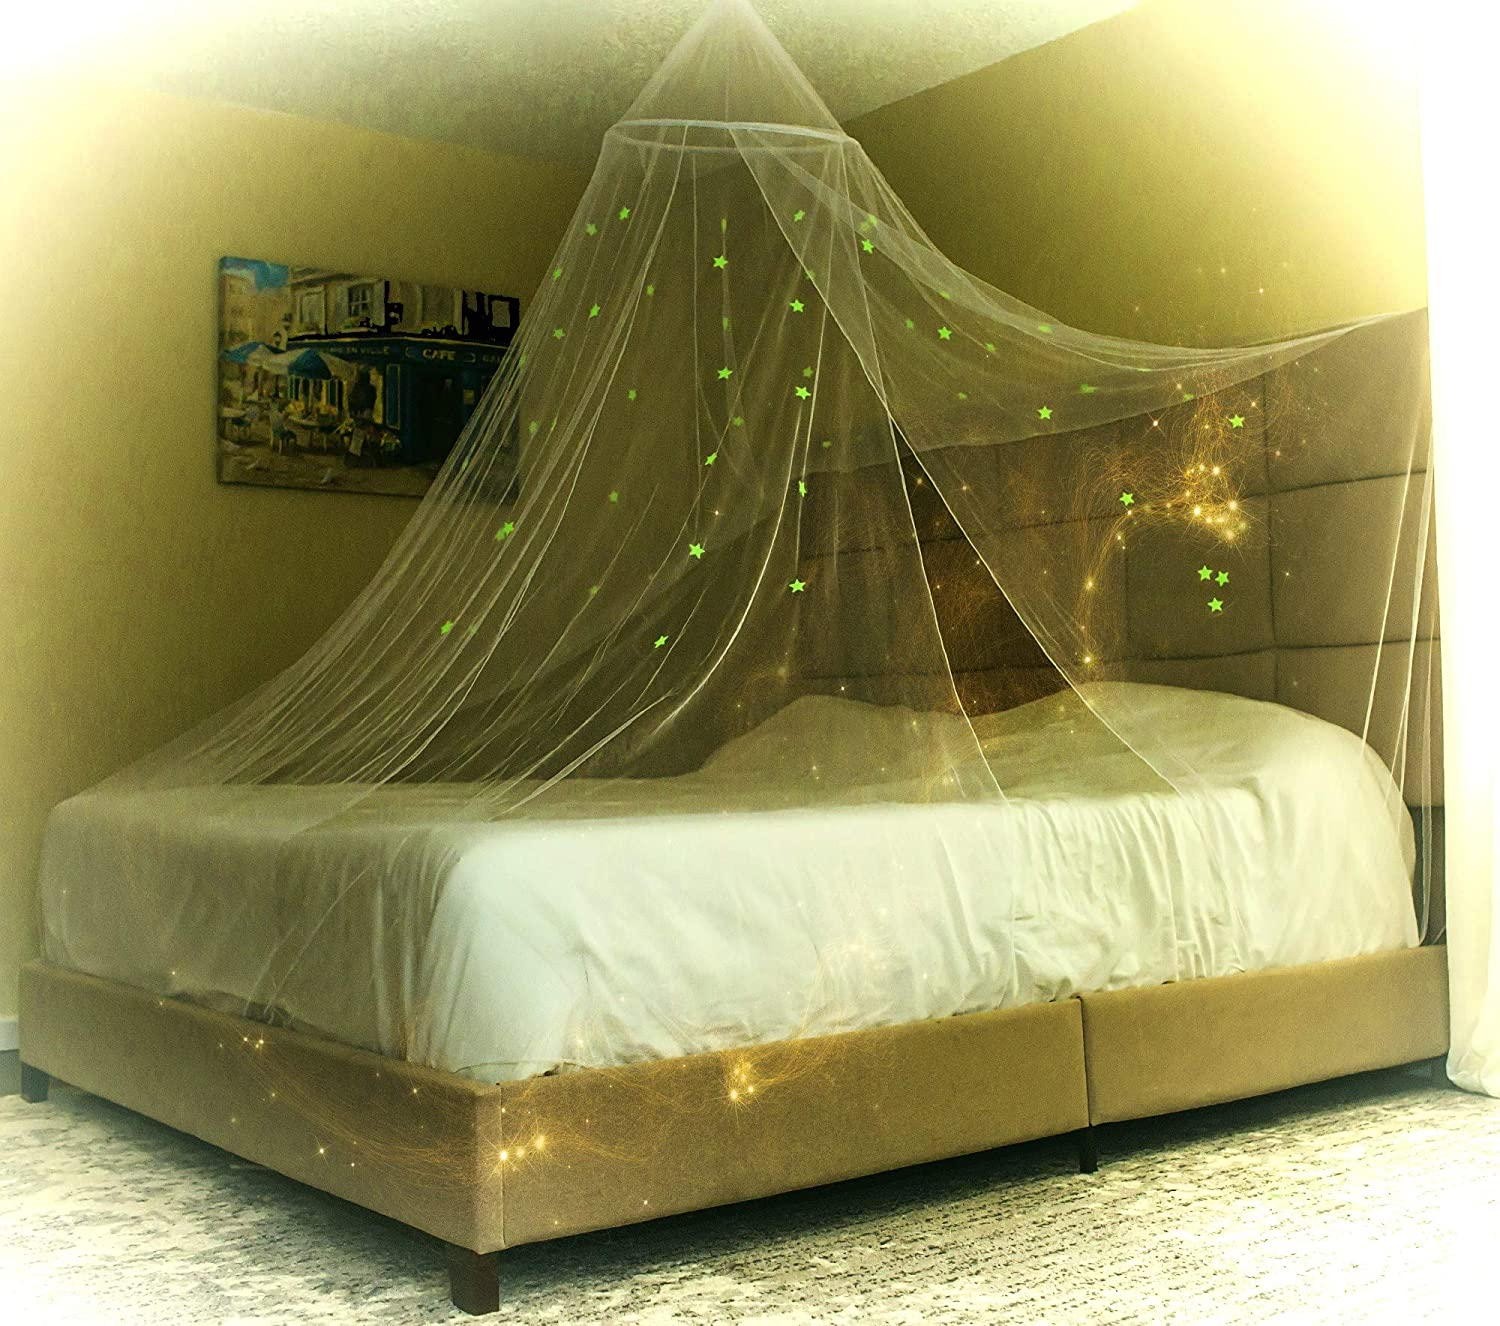 Selqual Bed Canopy for Calm and Carefree Nights. Bed Curtain Easy and Safe to use, Convenient for Crib to Full-Size Bed. Glowing Stars Create a Charming Decor and Solve Fear of The Dark Issues.